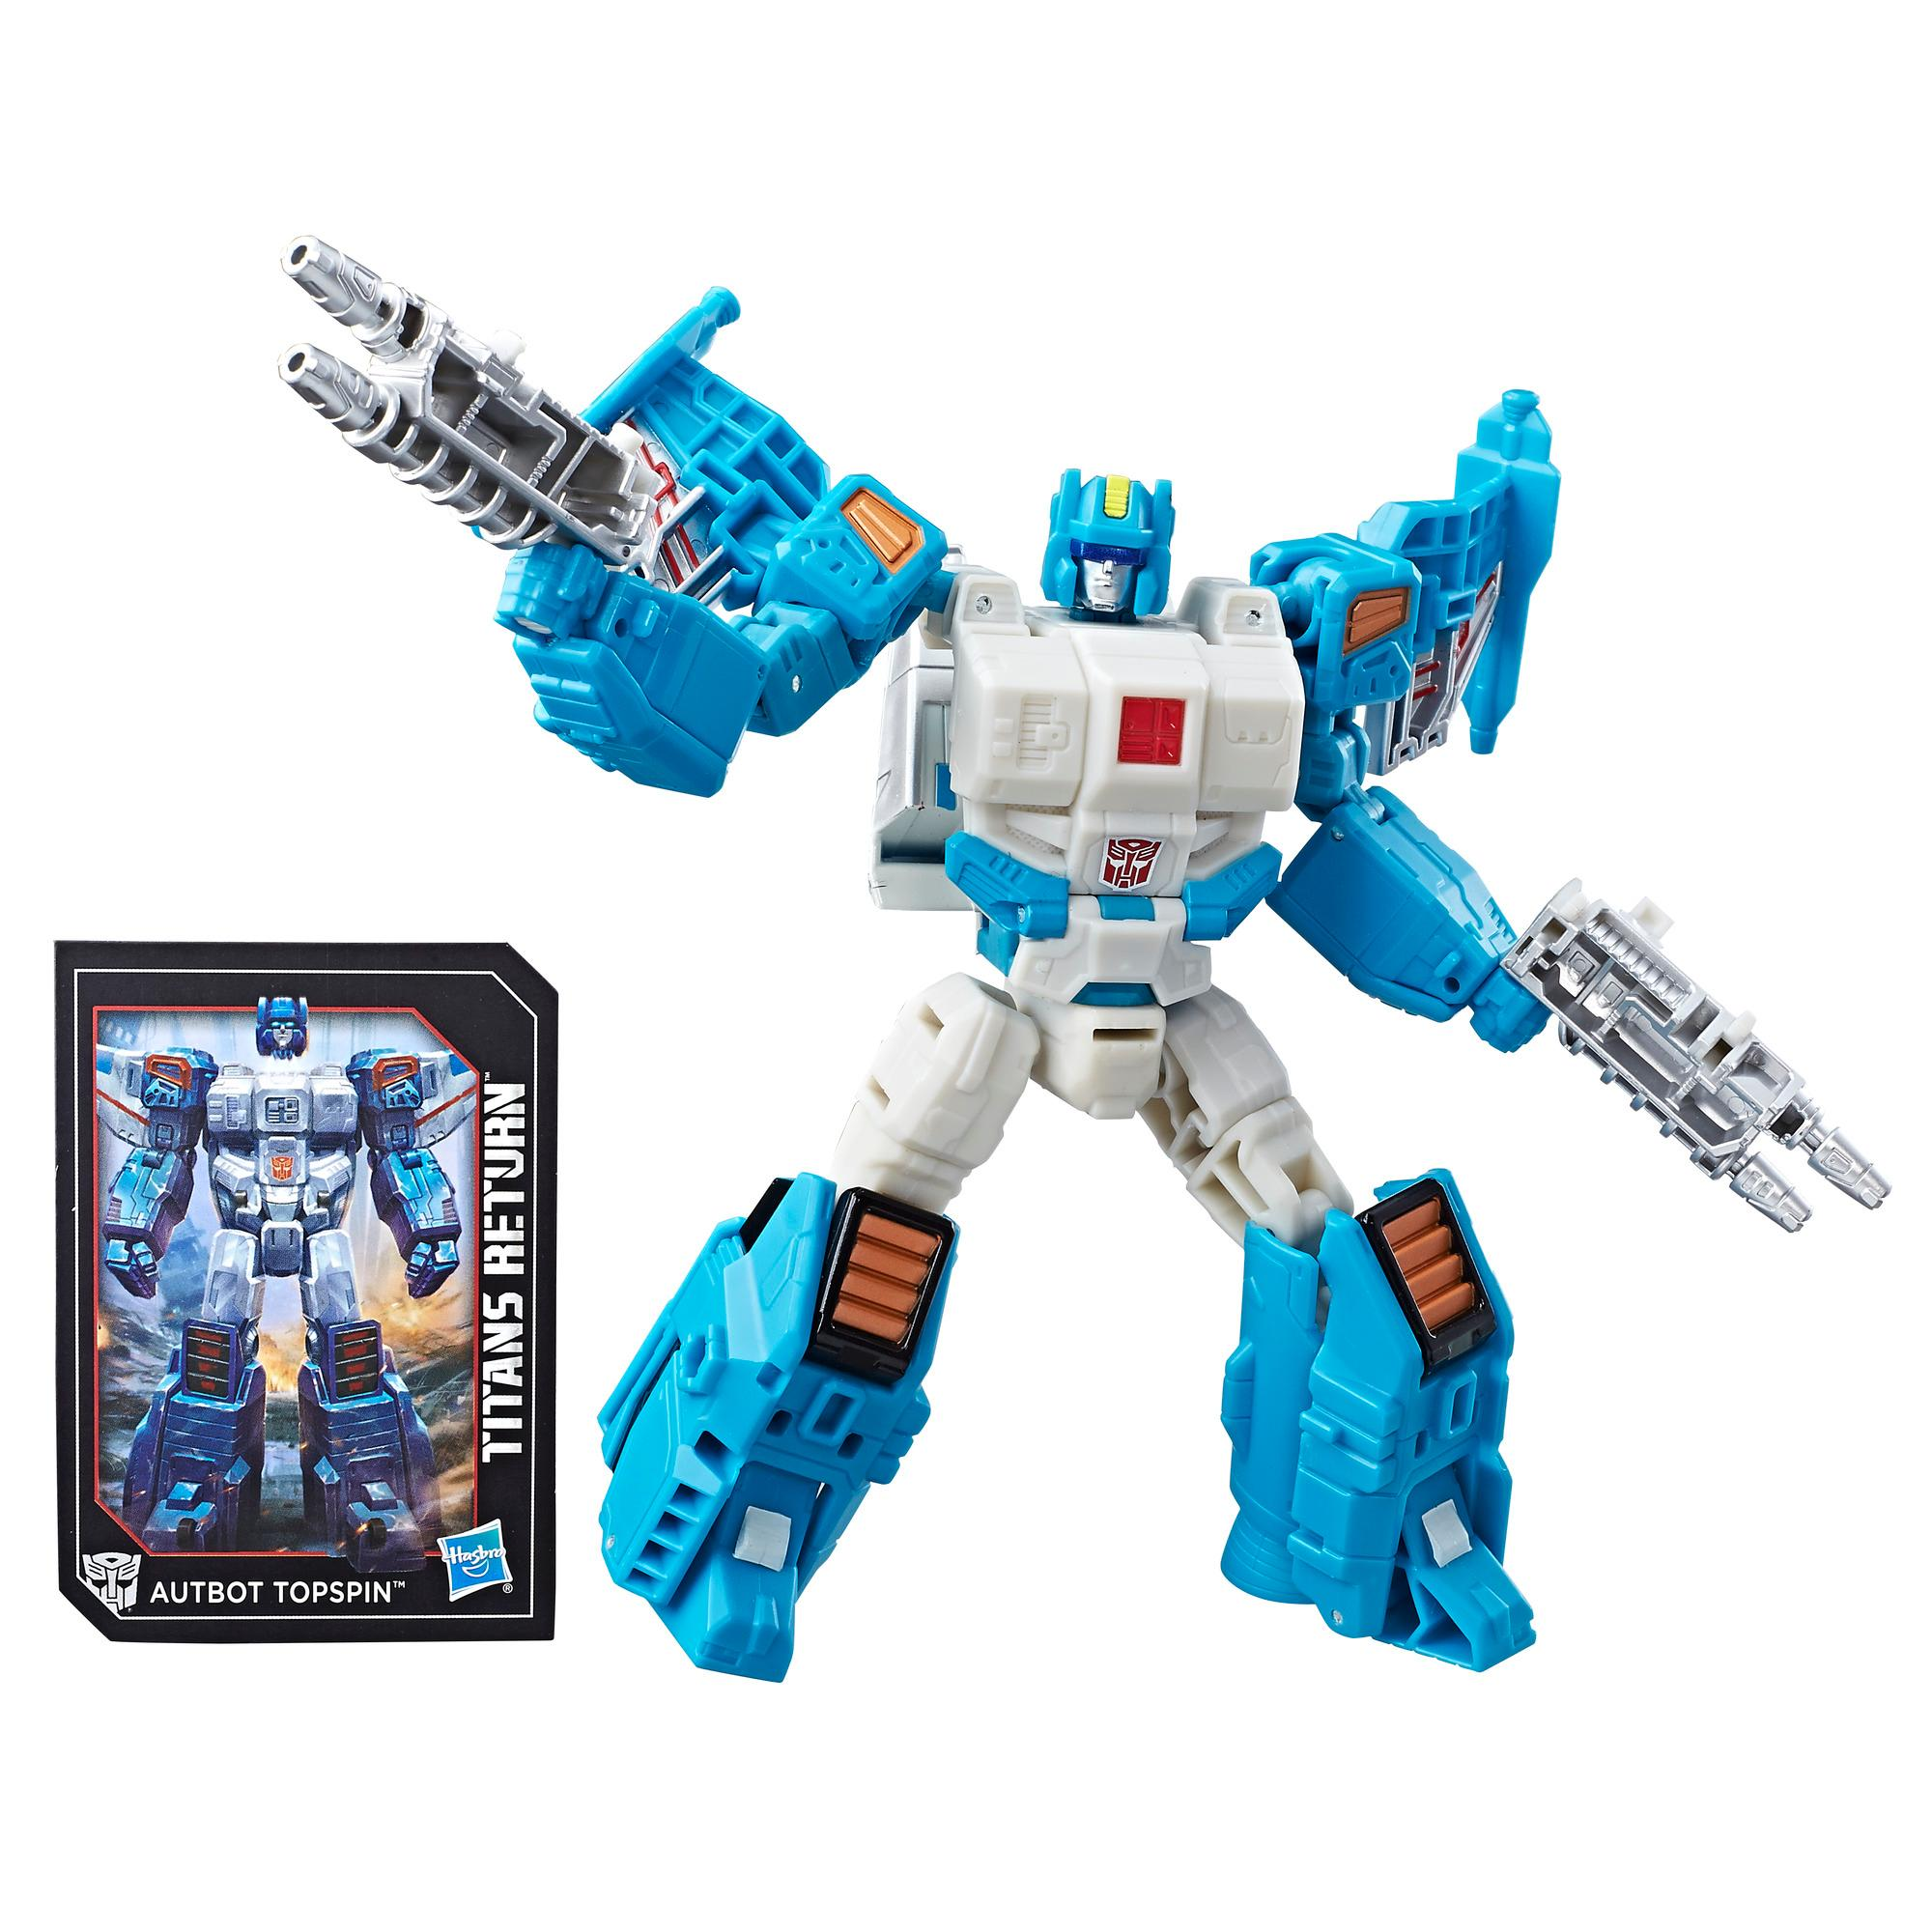 Transformers Titans Return Deluxe Class Autobot Topspin & Freezeout